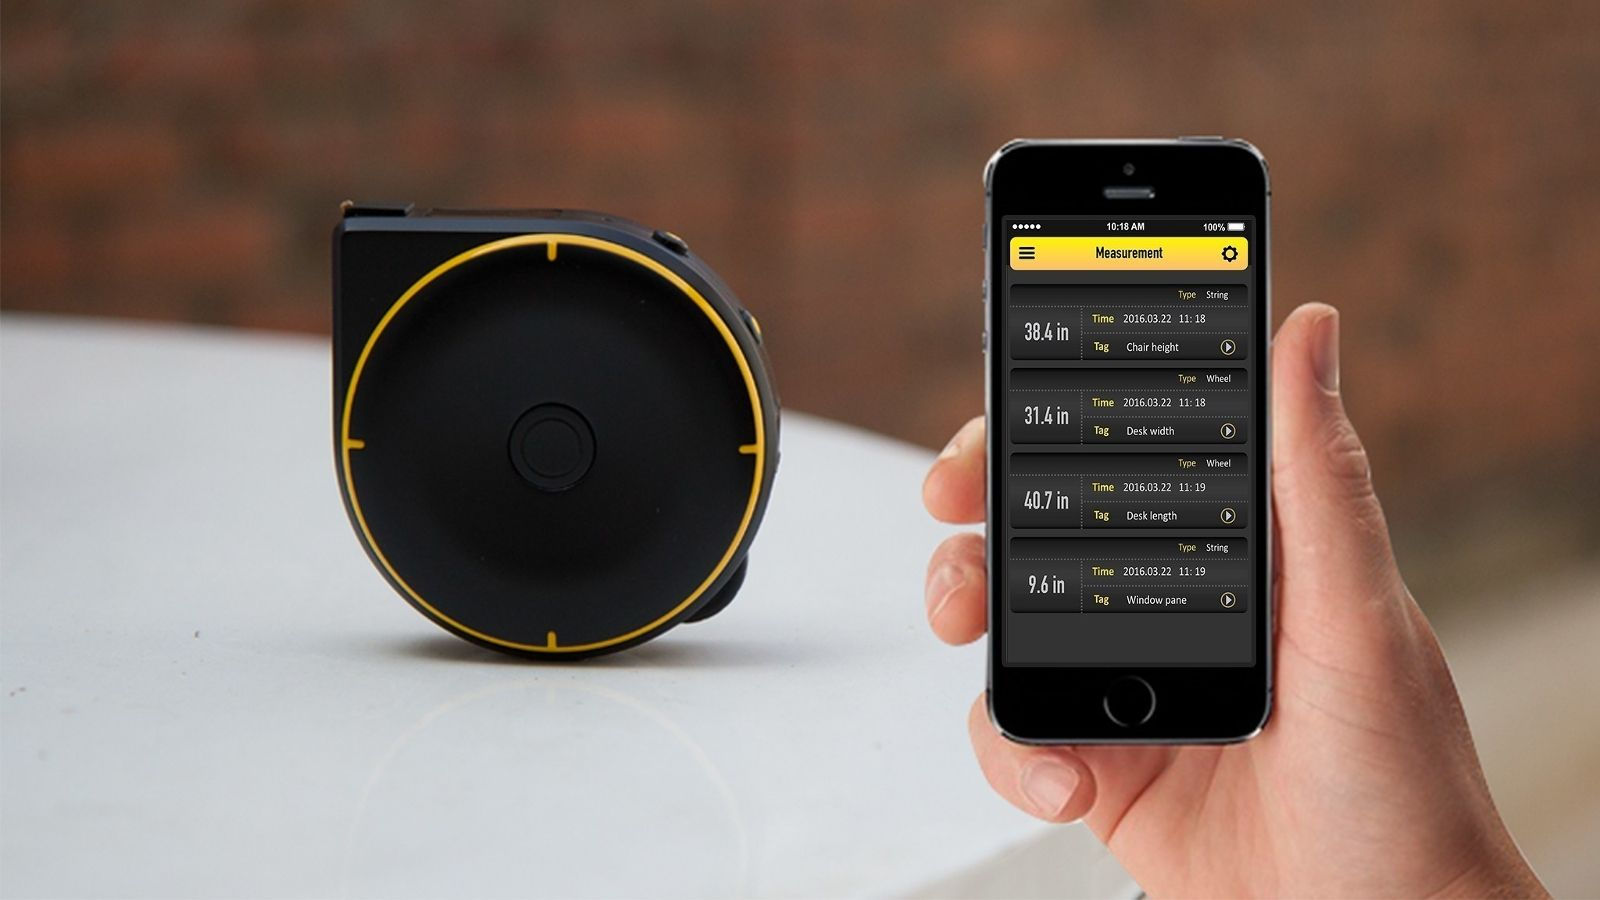 Bagel Labs Smart Measuring Tape Simplifies Diy Launches Kickstarter Campaign Tape Measure Tape Geeky Gadgets